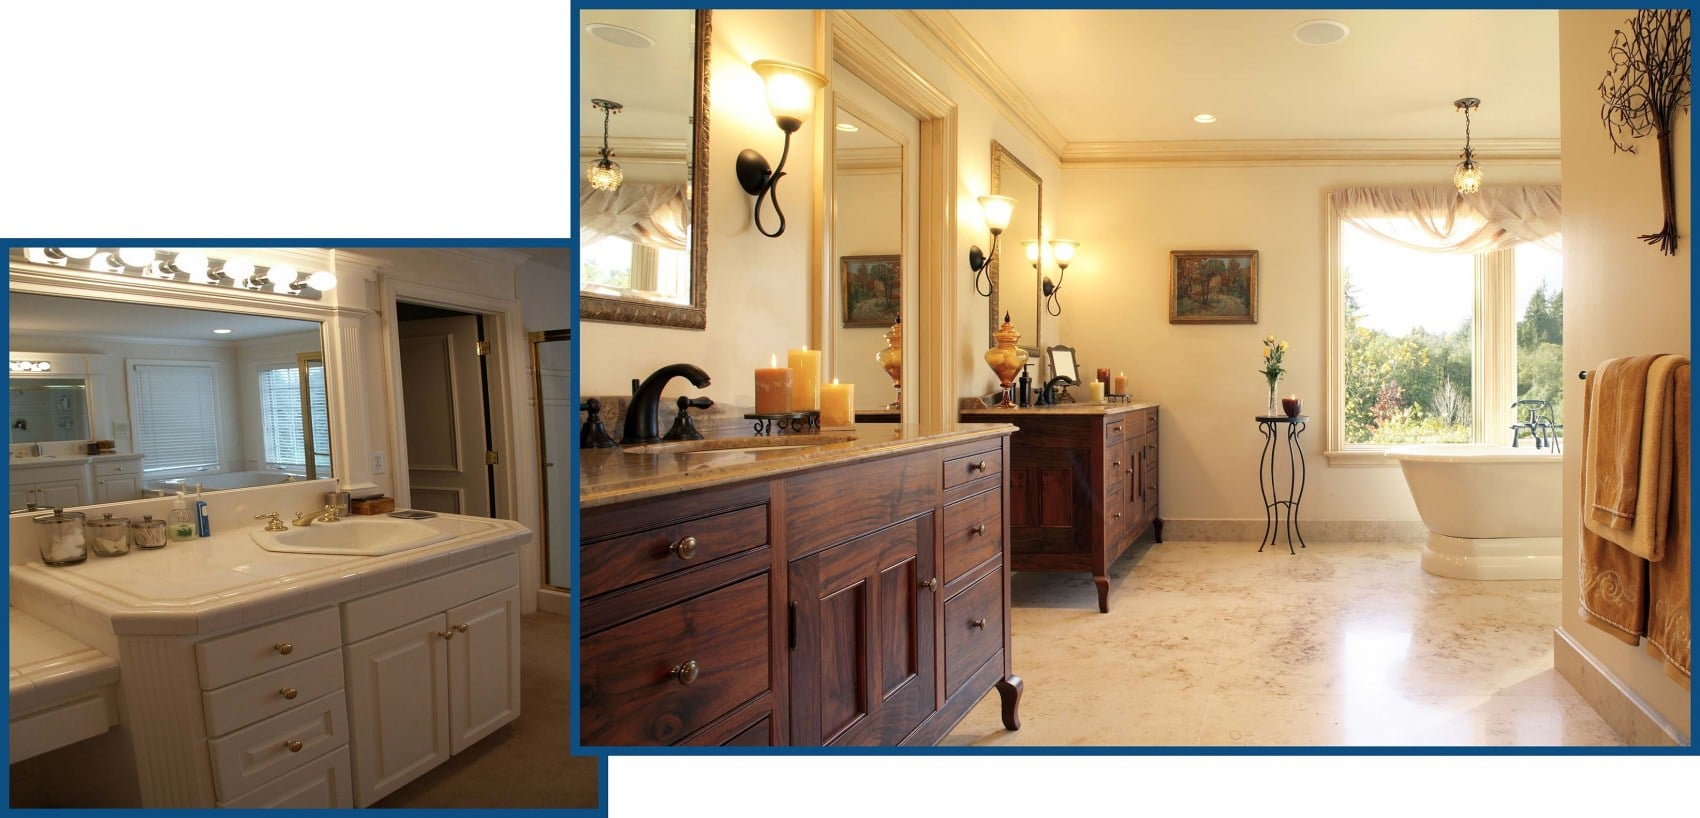 Tualatin Bathroom from Entry Before and After